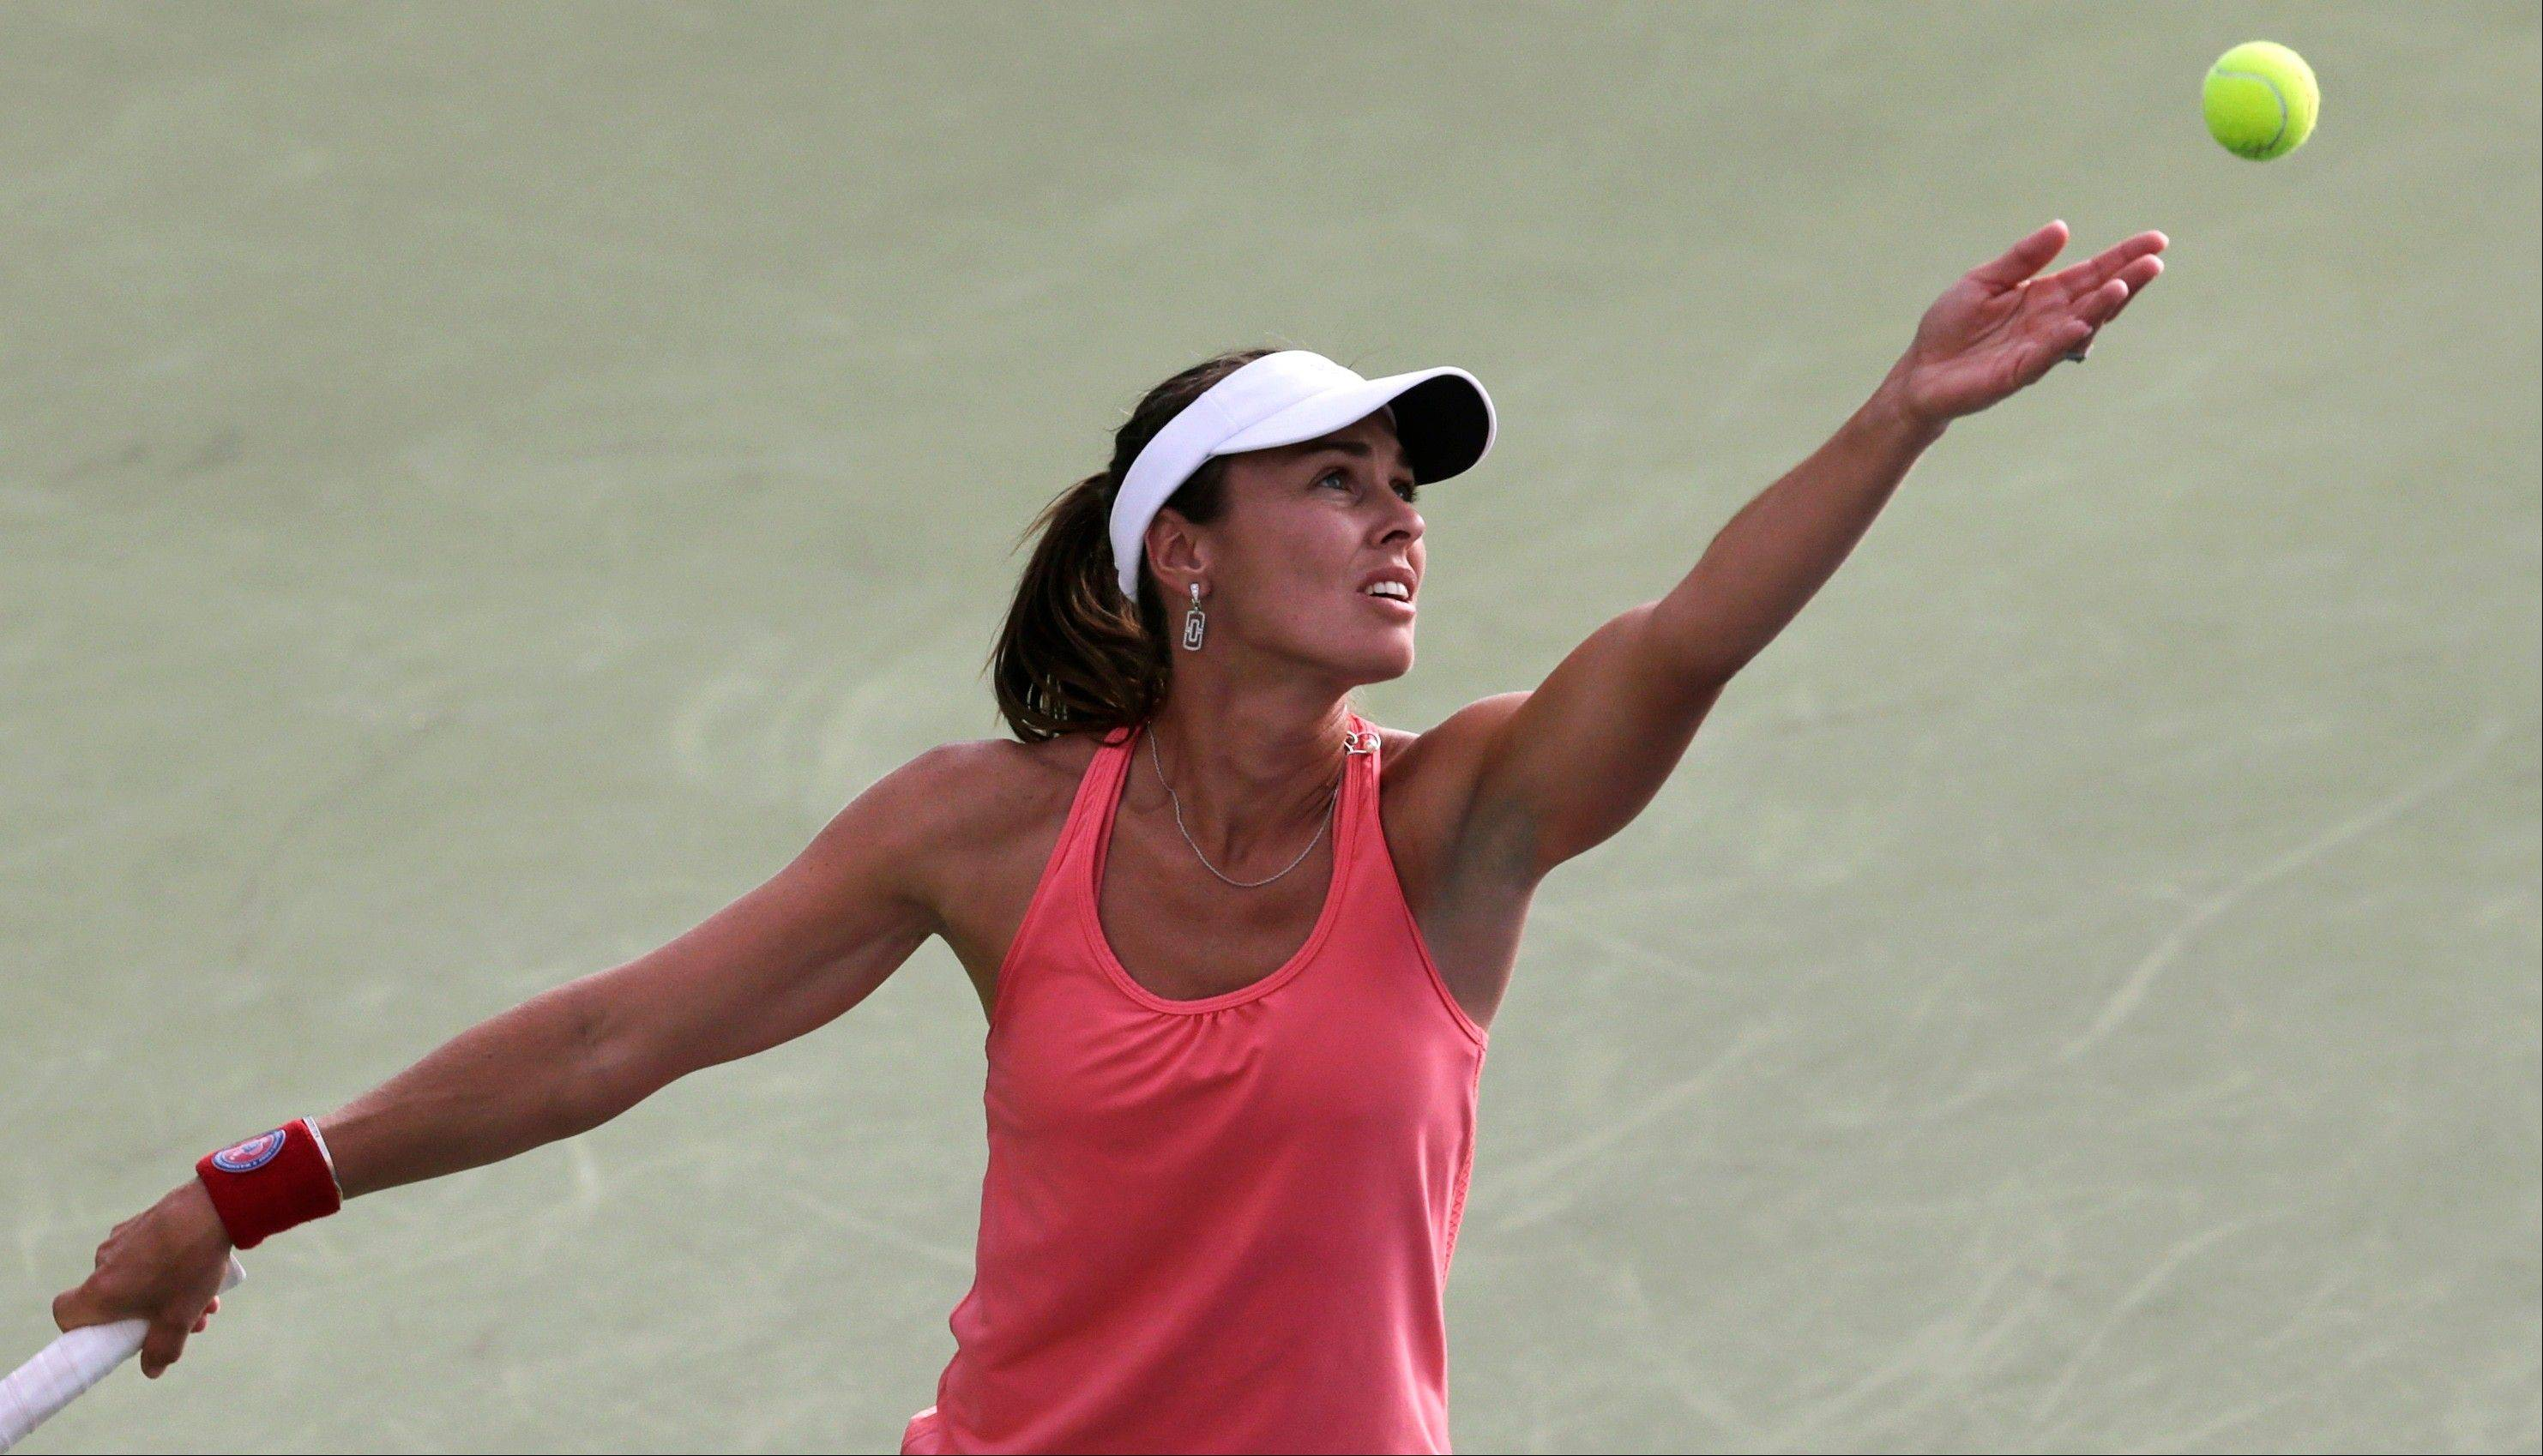 Martina Hingis serves during her doubles match Friday at the U.S. Open tennis tournament in New York.